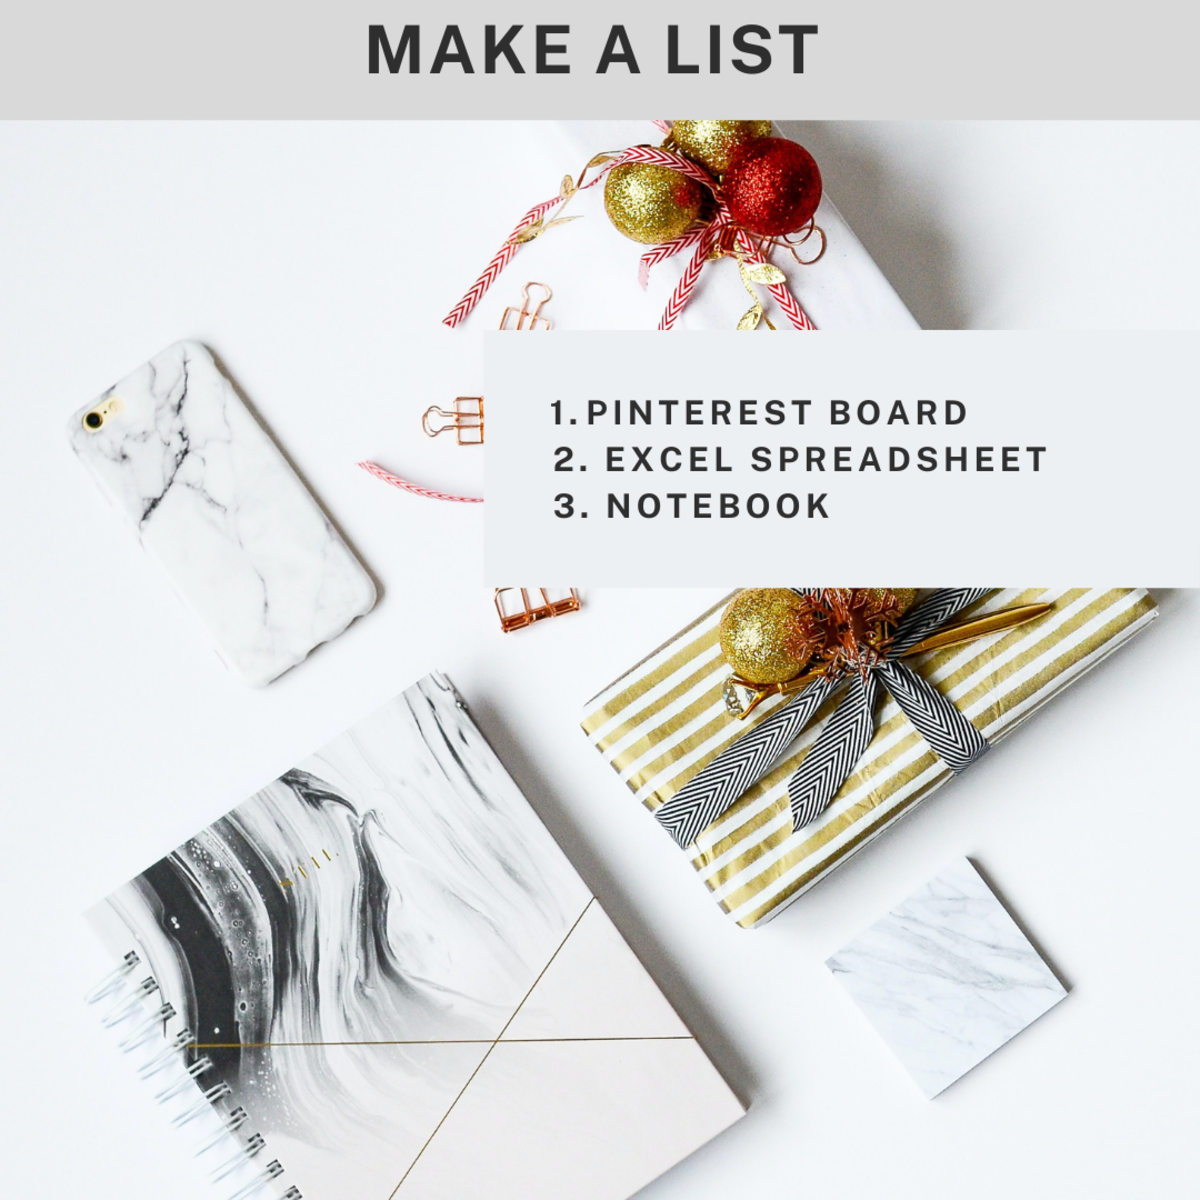 Use Pinterest, Excel, or a notebook to record Christmas gift ideas.